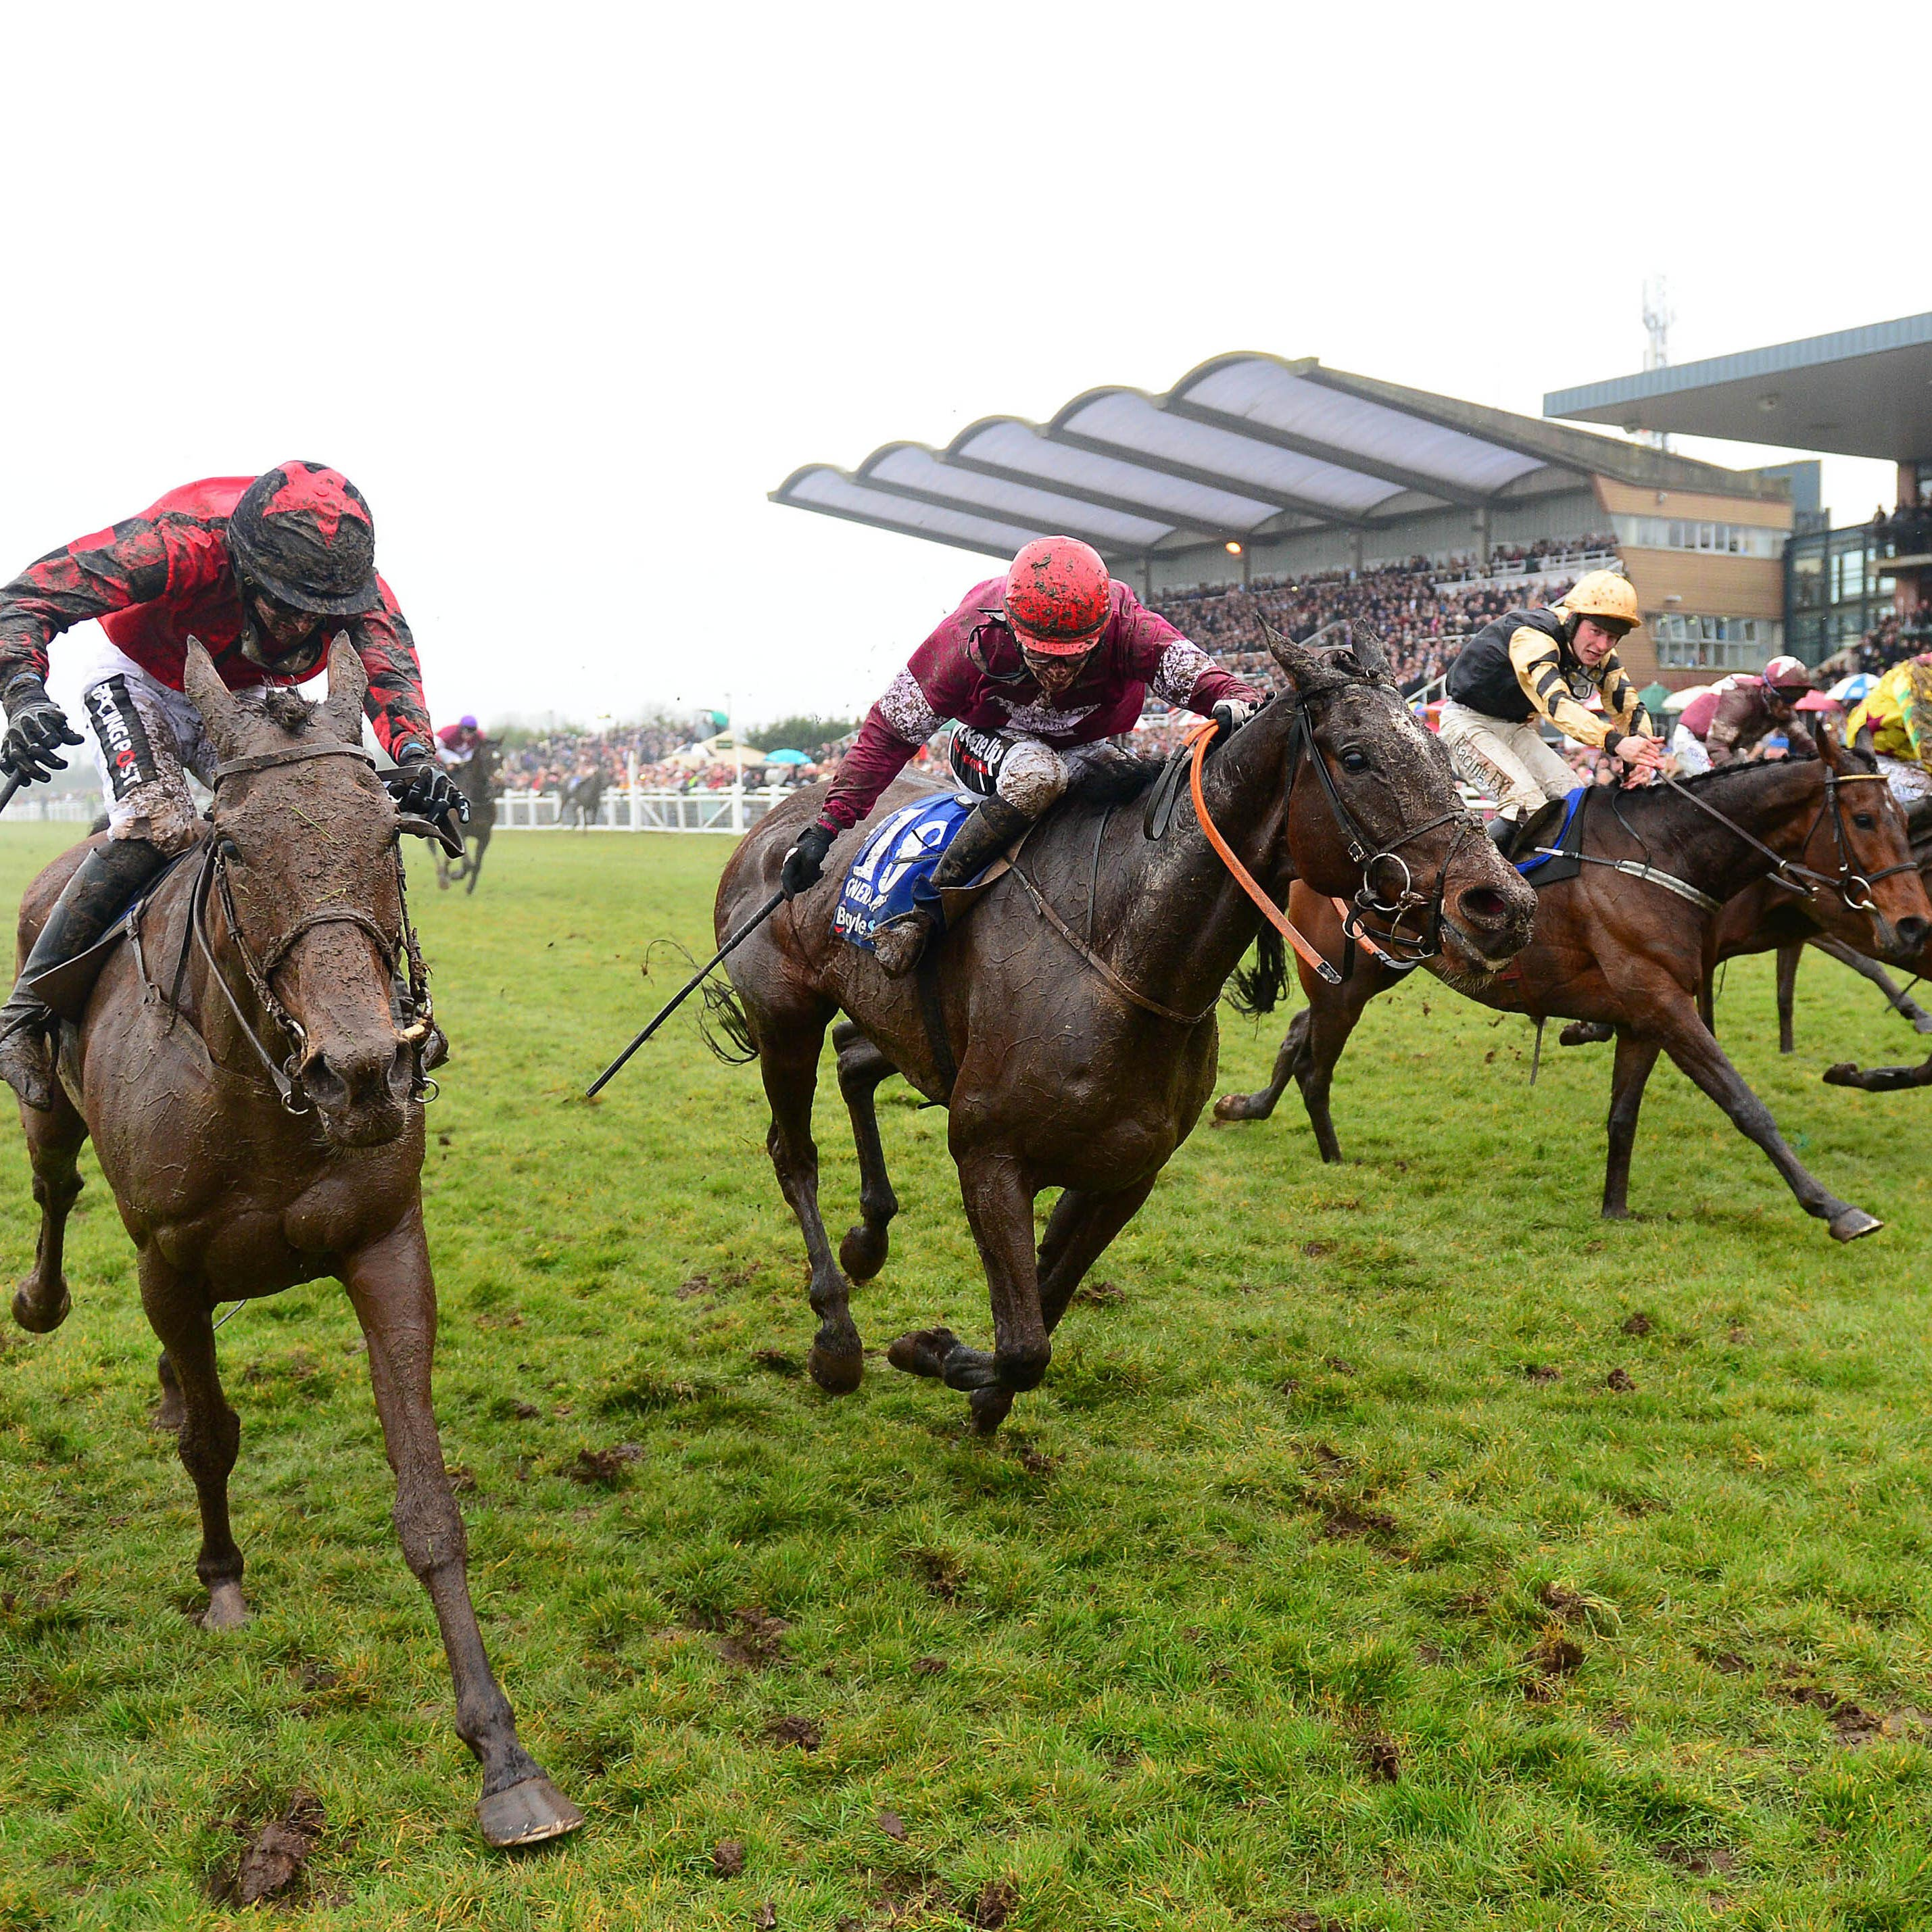 General Principle (second left) came out on top in a blanket finish last year